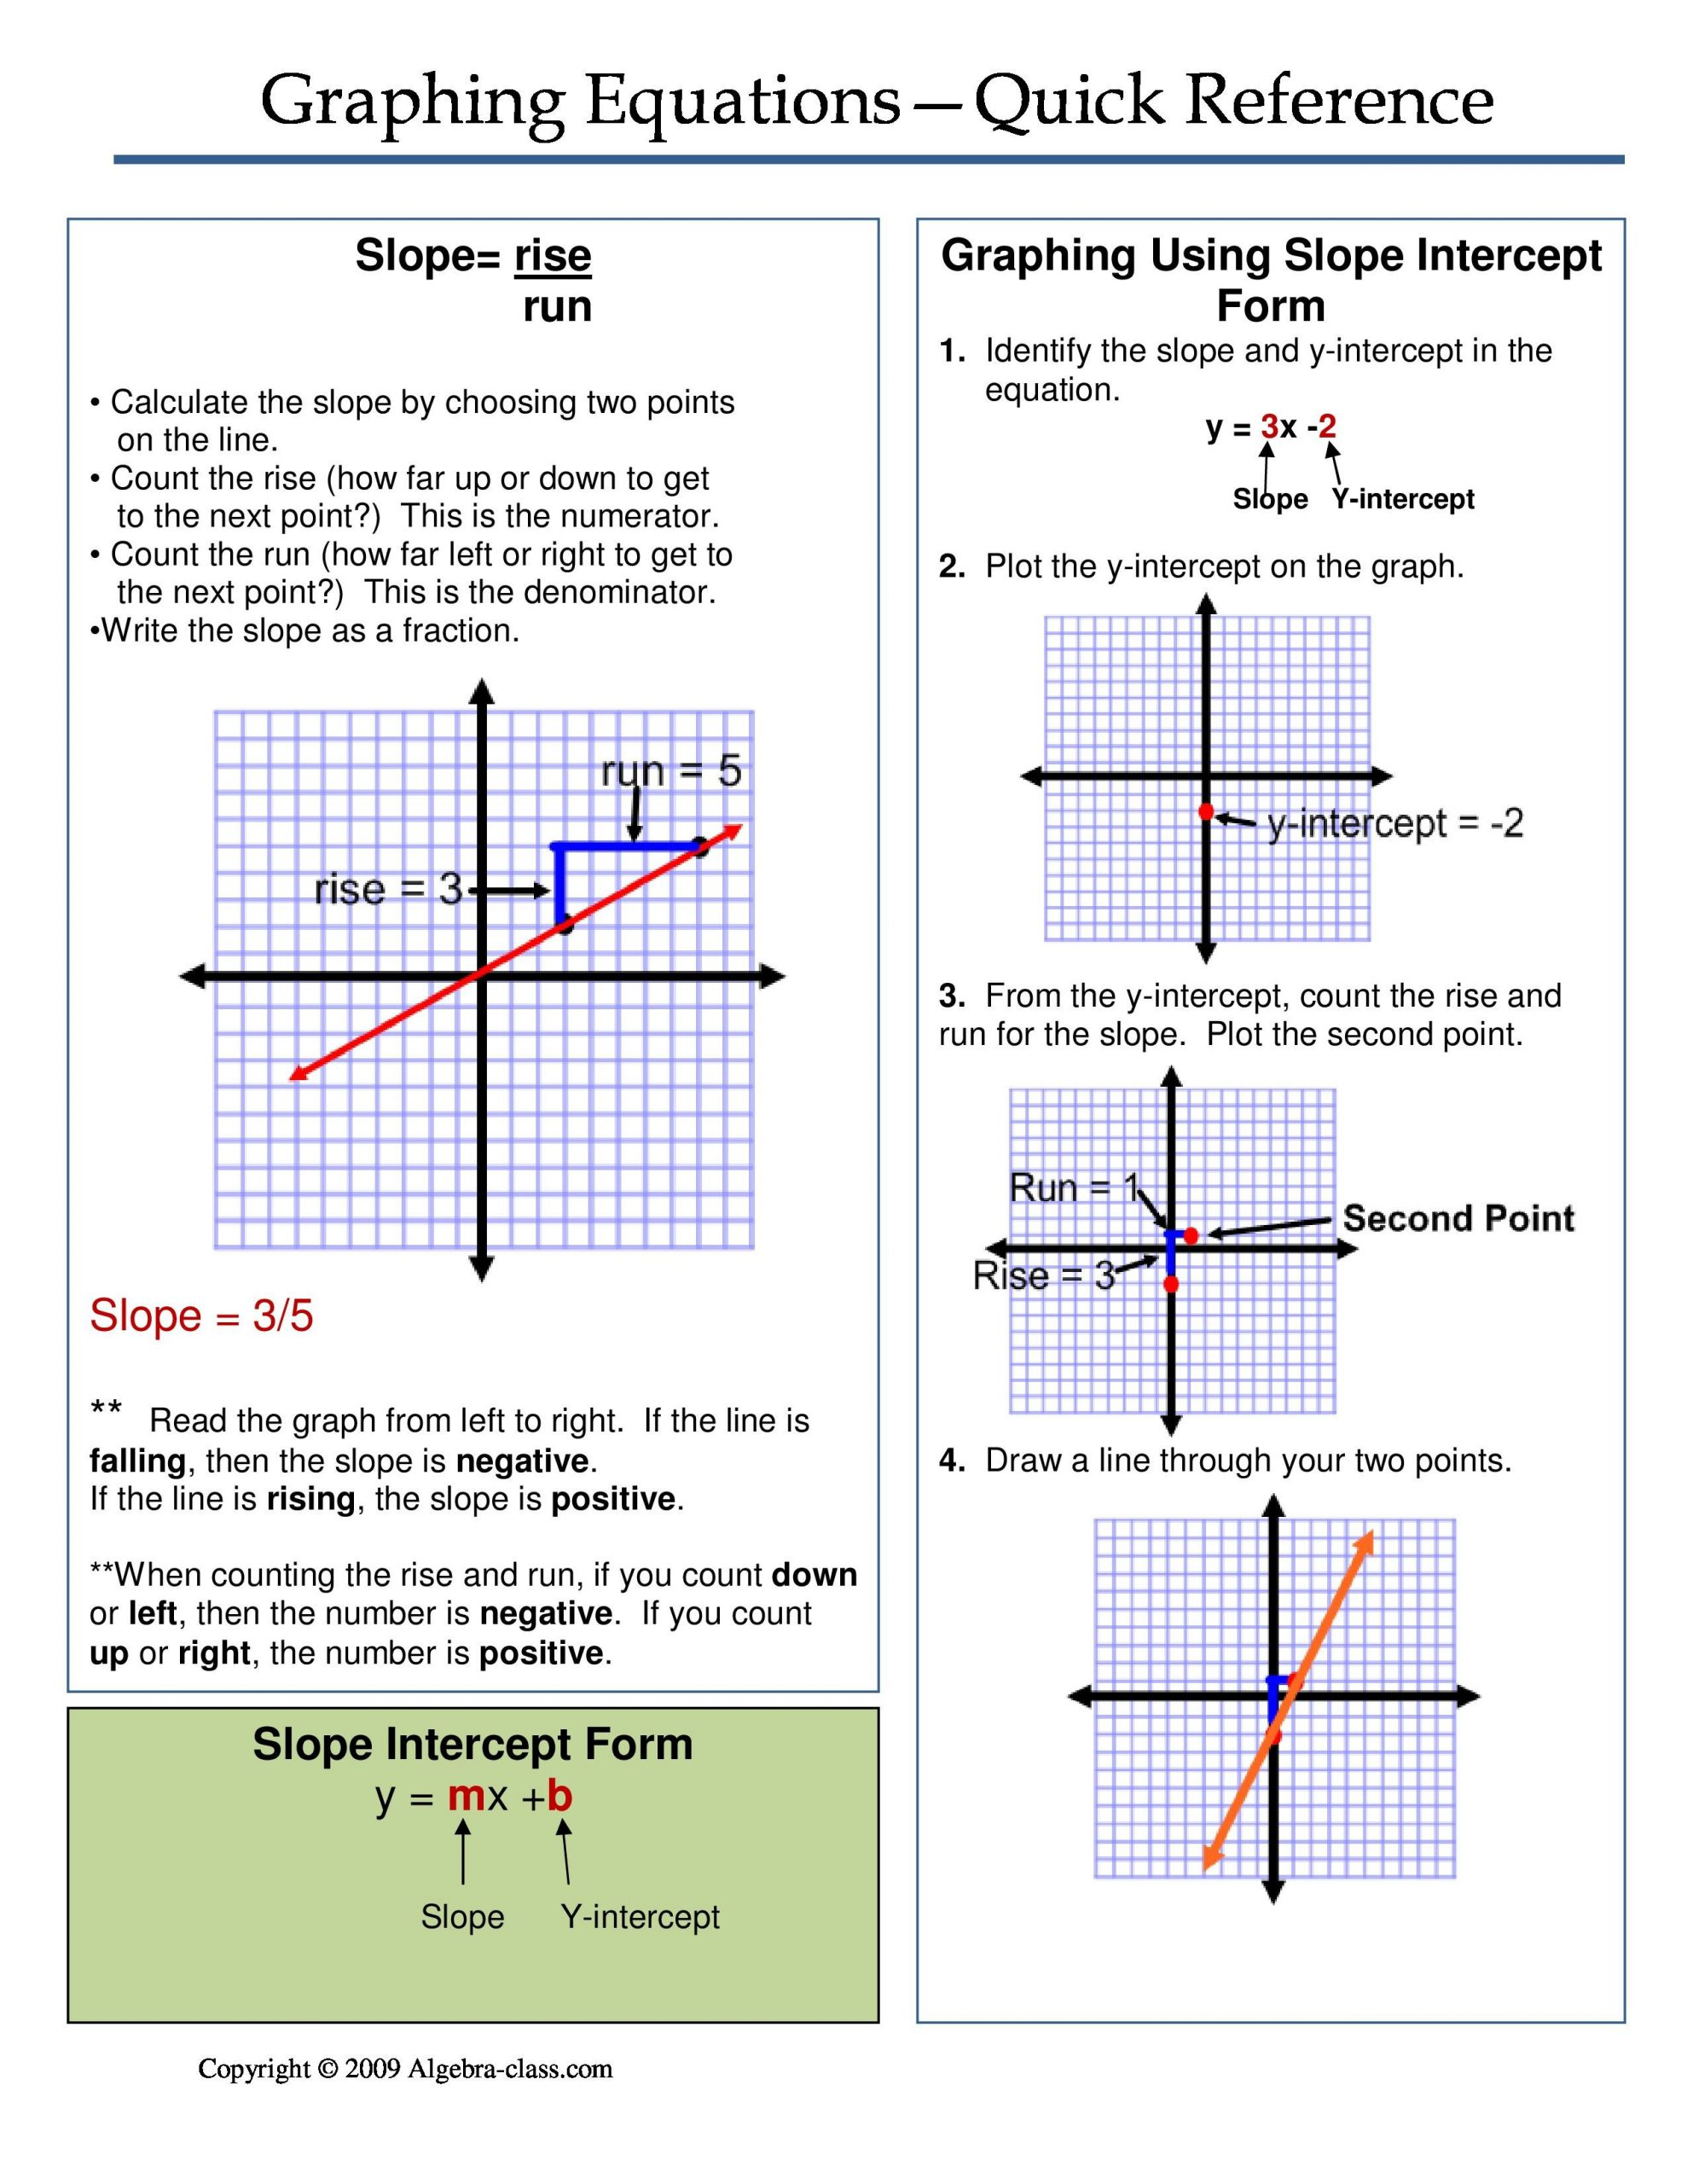 Systems Of Equations Graphing Worksheet E Page Notes Worksheet for the Graphing Equations Unit